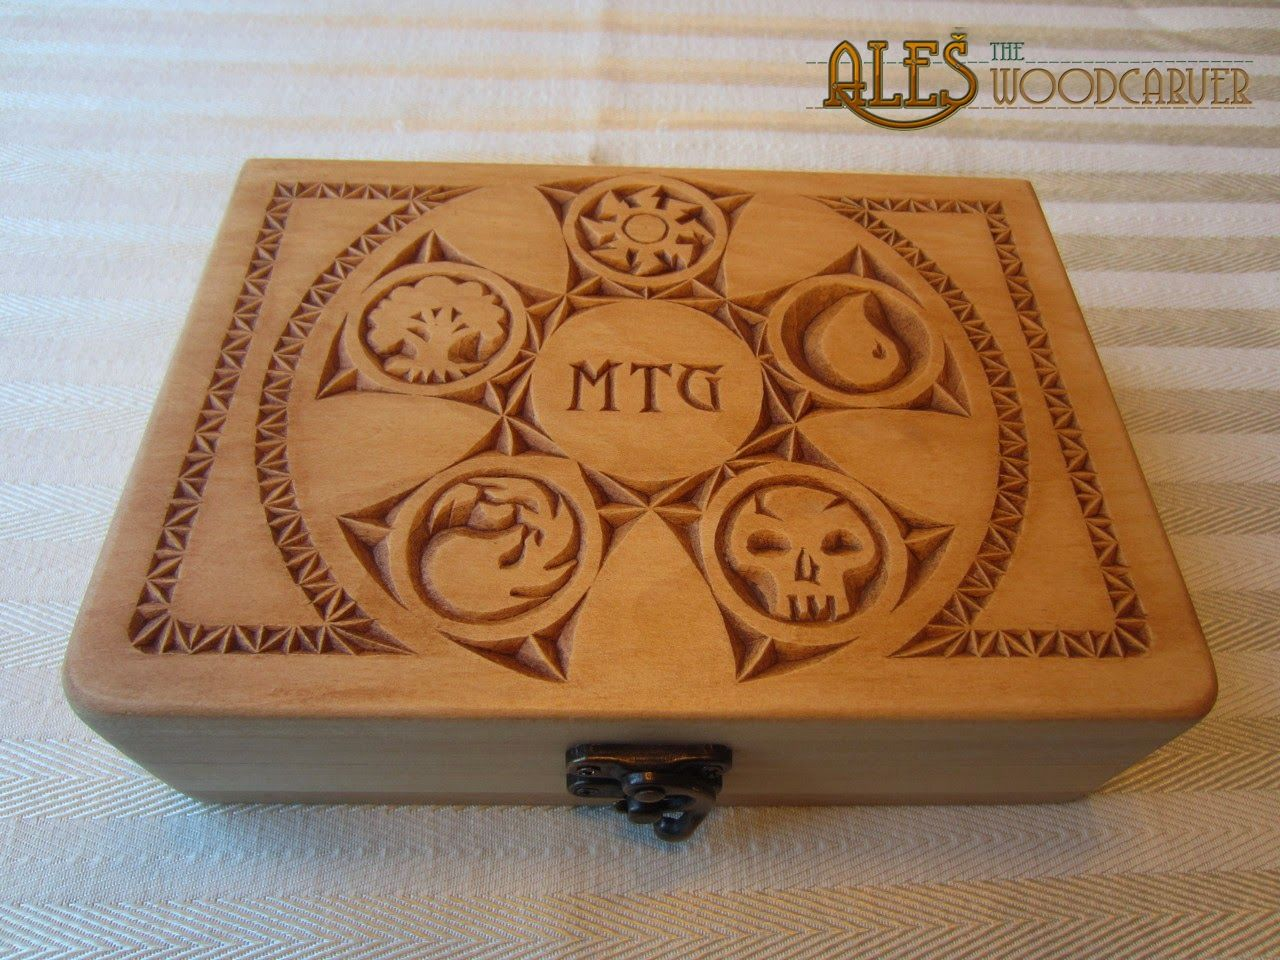 Chip carved card box for mtg all mana symbols incorporated into chip carved card box for mtg all mana symbols incorporated into the five pointed rosette biocorpaavc